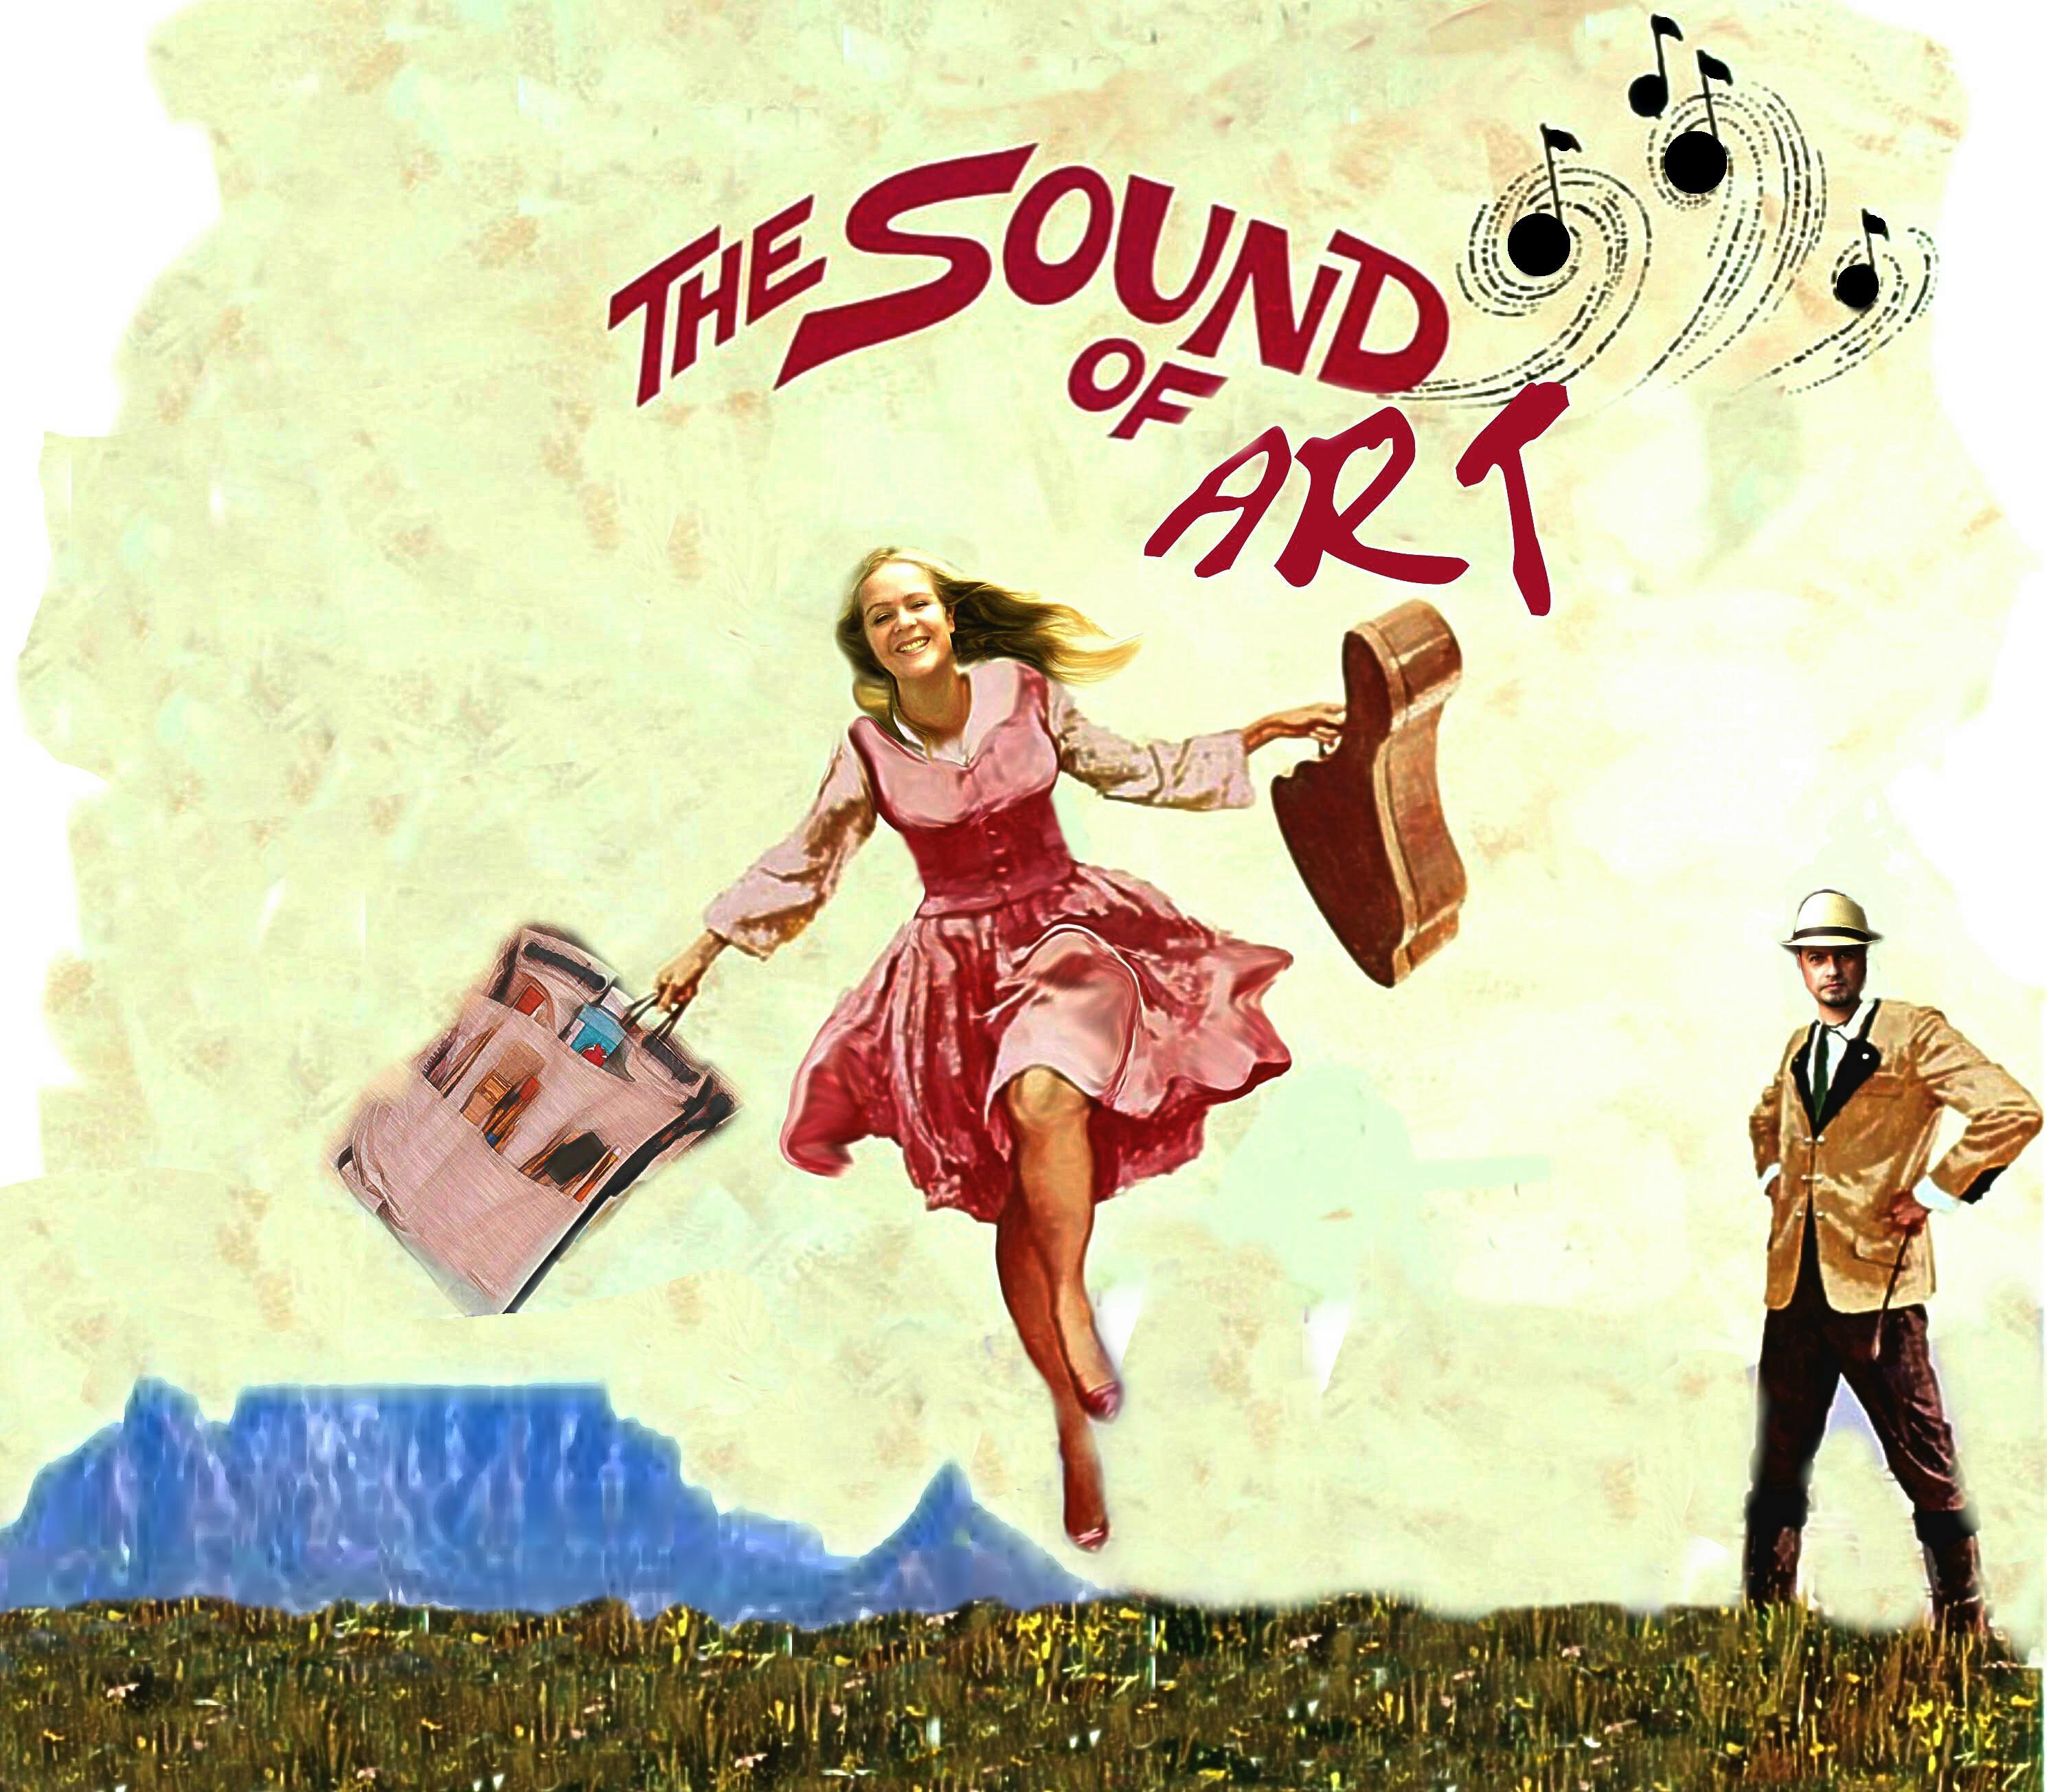 The Sound of Art Poster 3